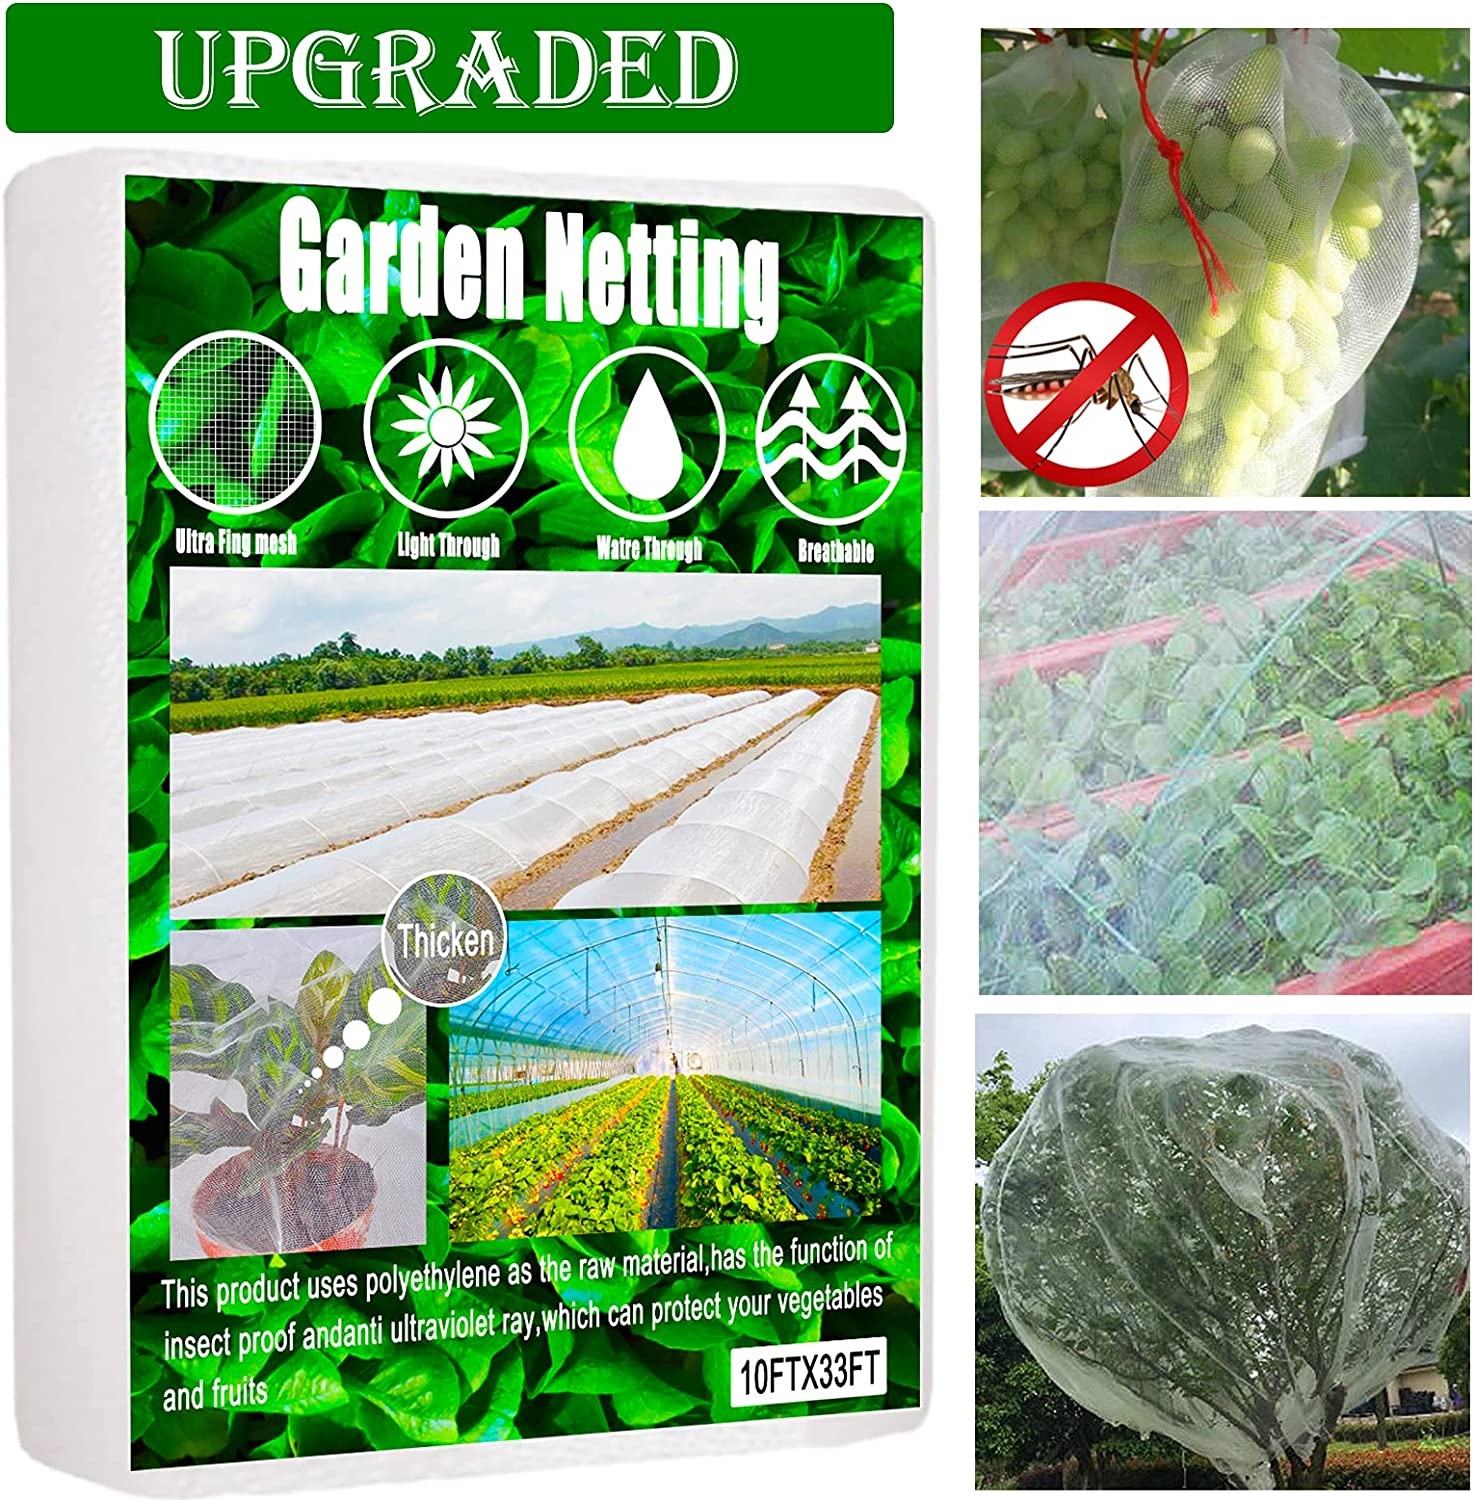 Upgraded Garden Netting, 10ftx33ft Insect Netting, Thicken Bird Mosquito Netting, Ultra Fine Bug Netting, Soft Permeable Bug Cicada Netting for Garden, Garden Screens Insect Mesh for Plants